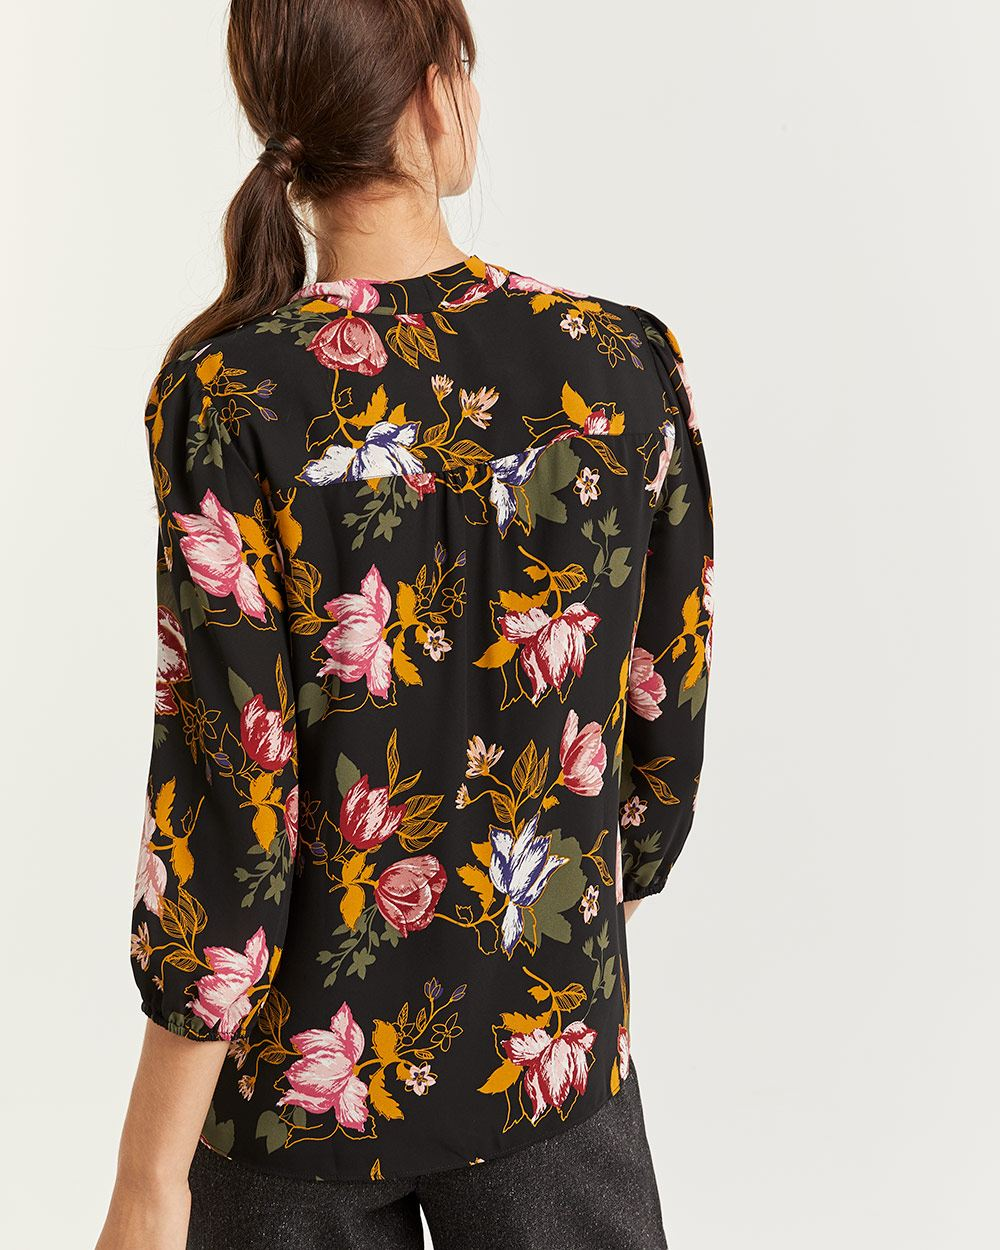 3/4 Sleeve Floral Print Blouse with Bow